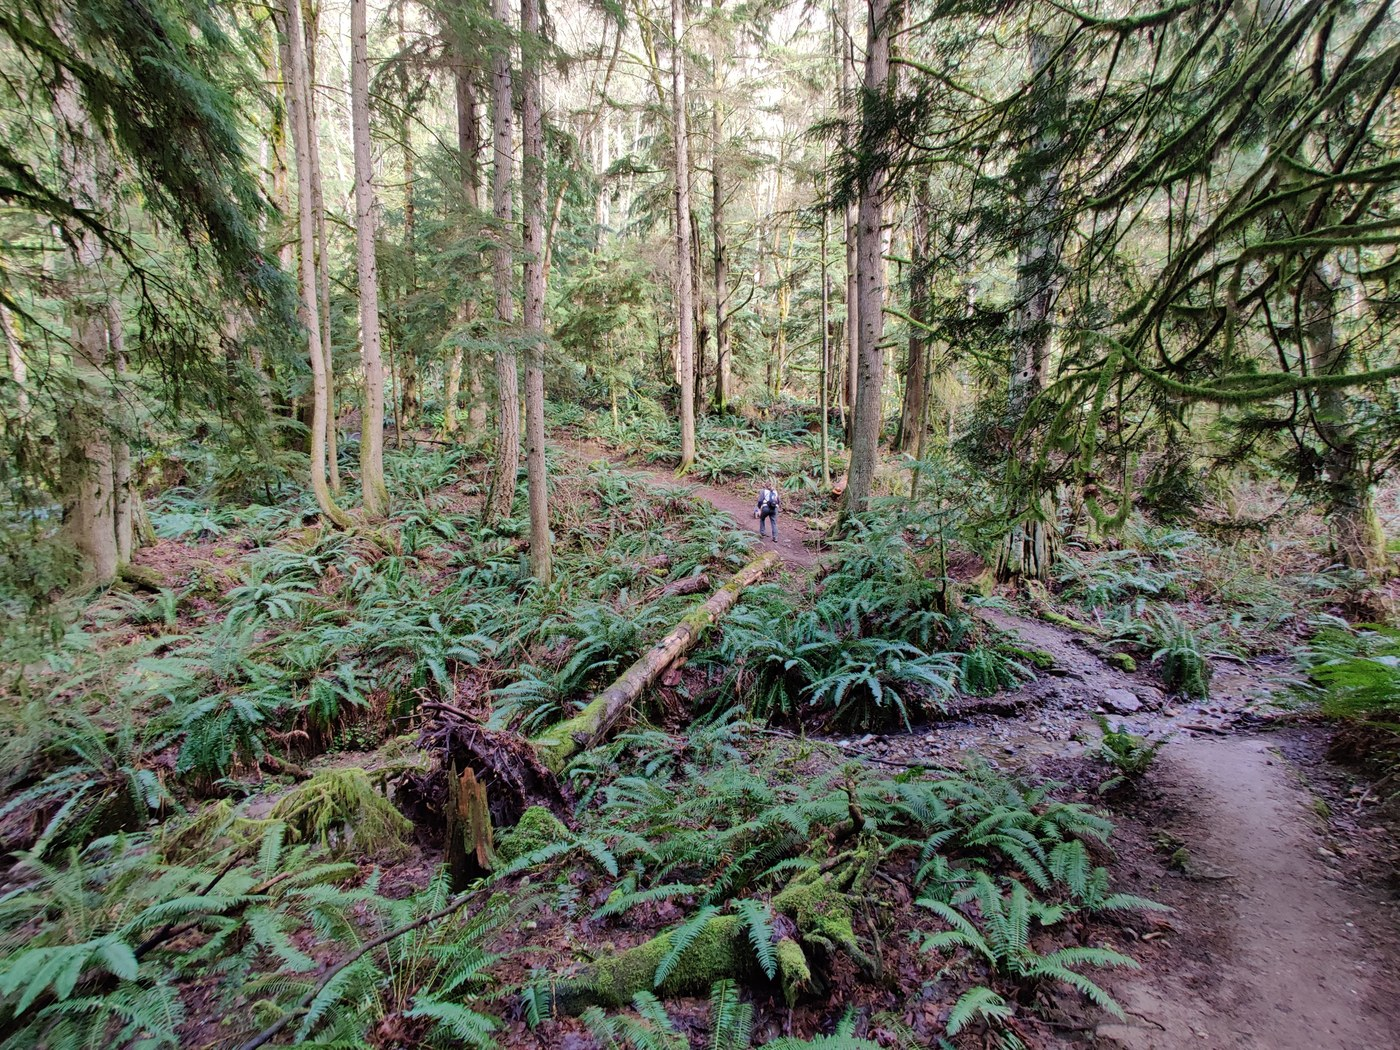 Lush forest surrounding the Margaret's Way trail.